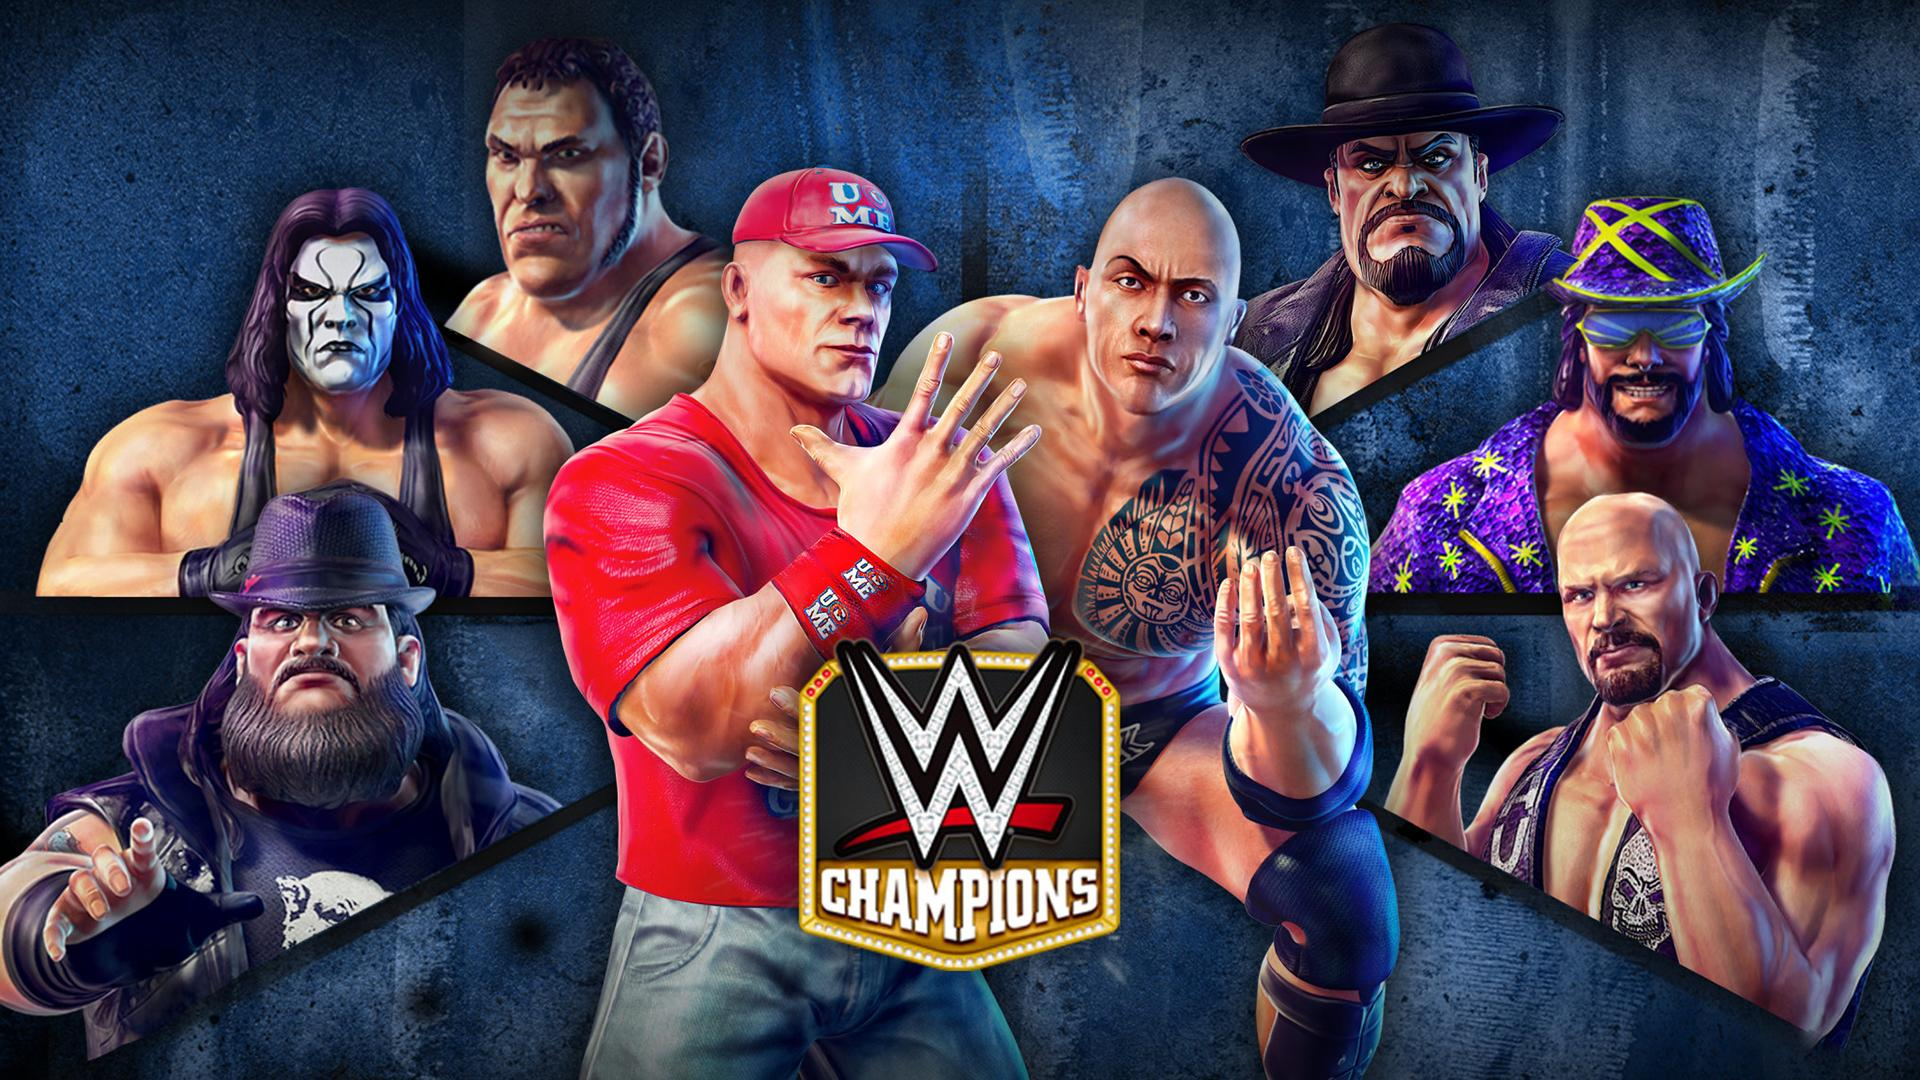 WWE Champions Wallpaper